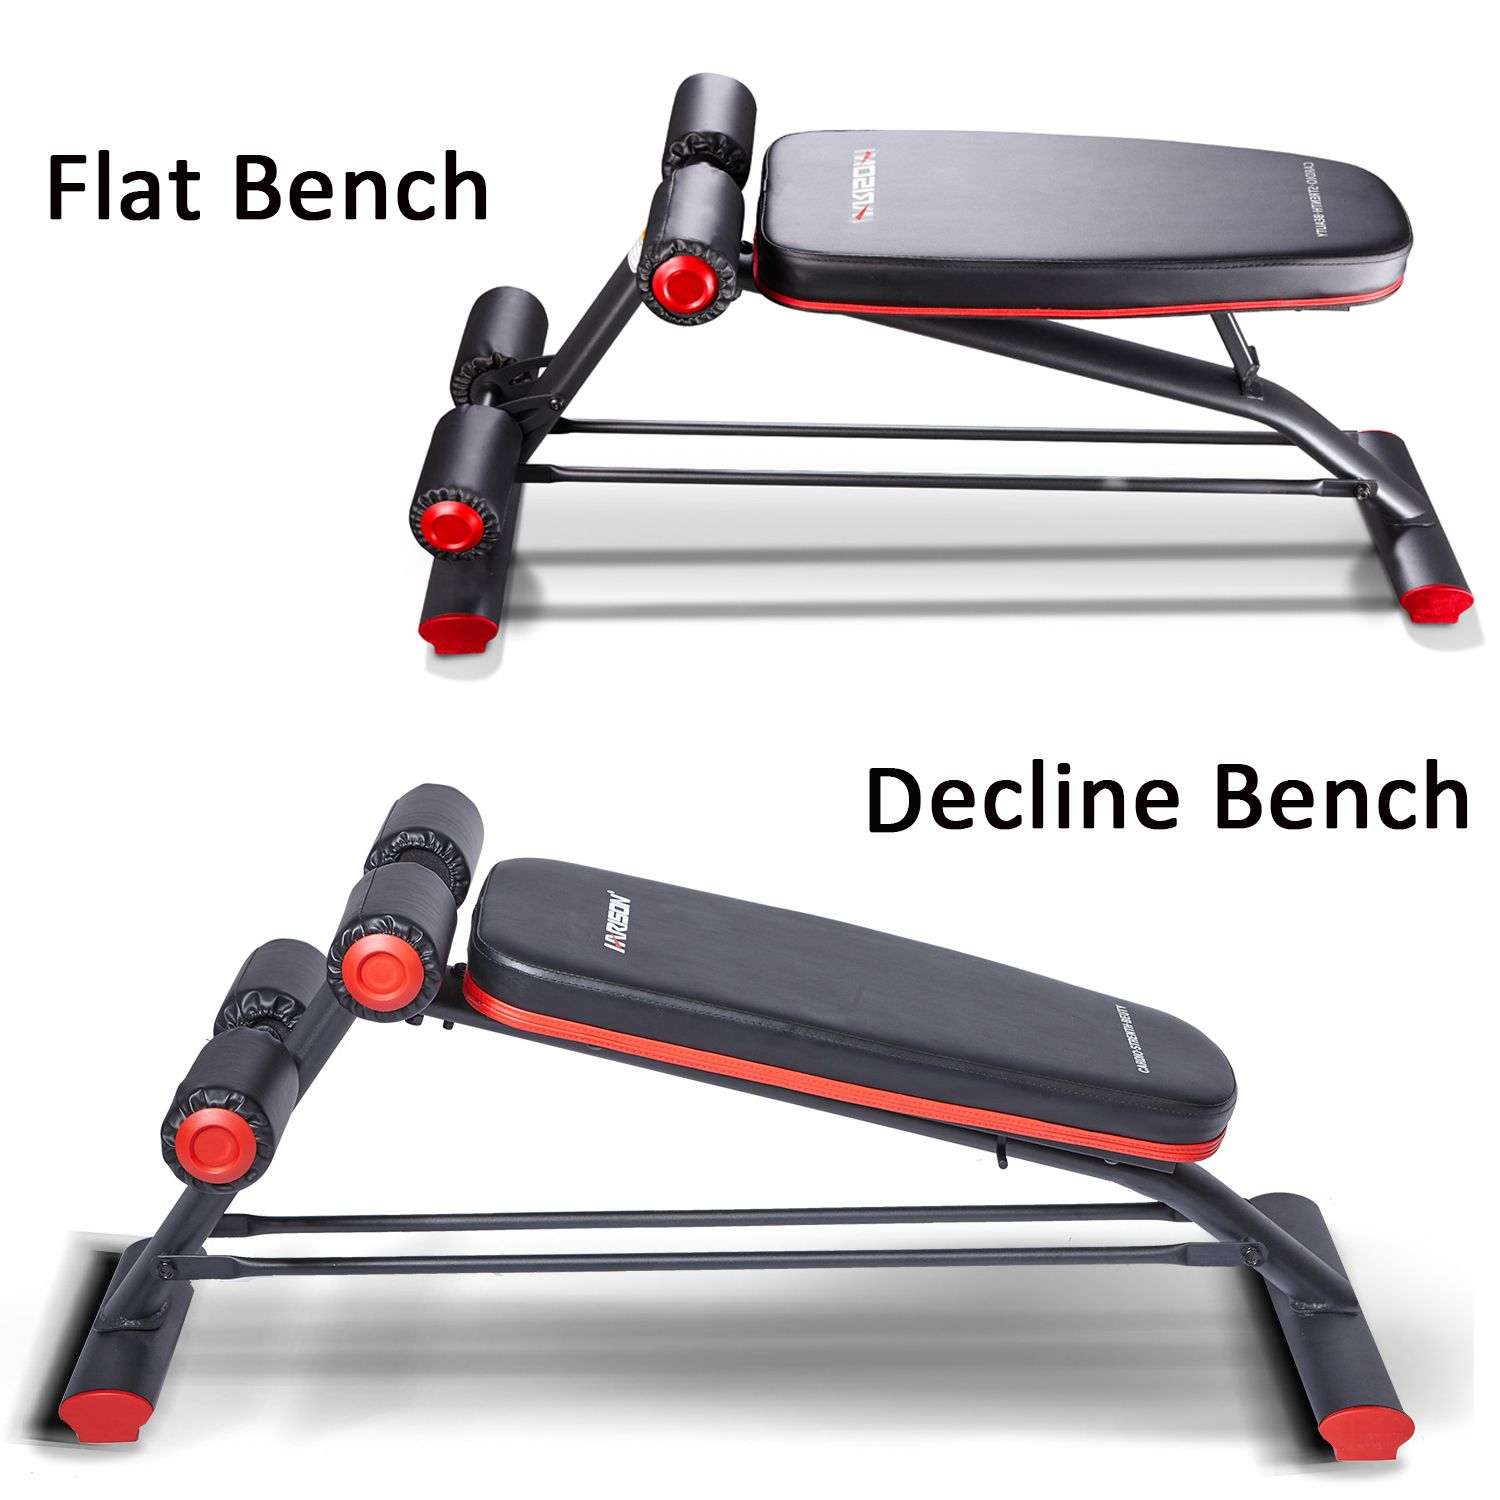 Harison 607d Adjustable Weight Bench In 2020 Adjustable Weight Bench Weight Benches Bench Workout